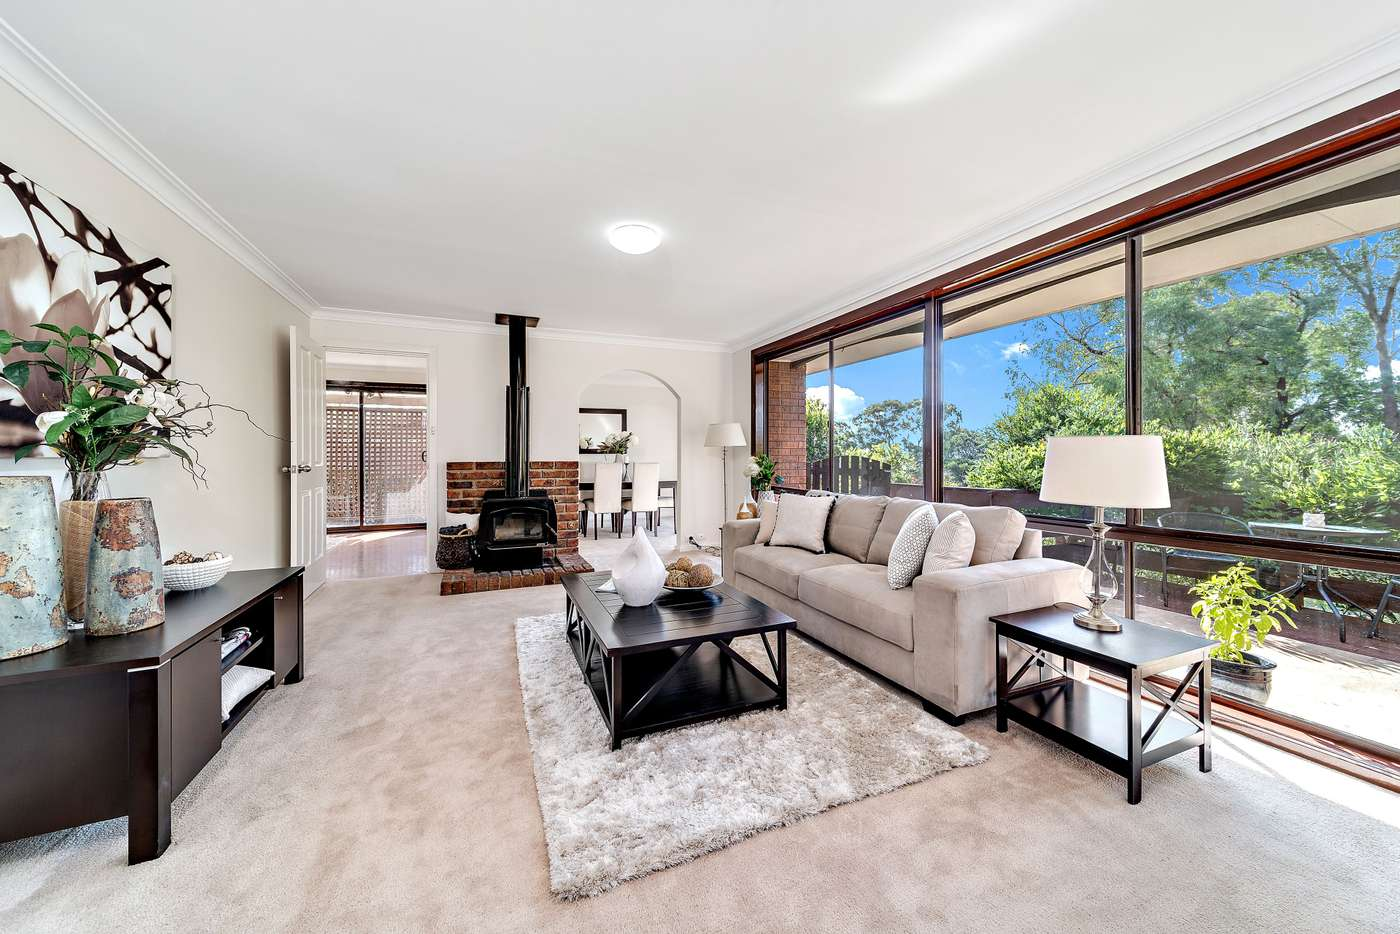 Main view of Homely house listing, 42 Foskett Street, Fraser ACT 2615